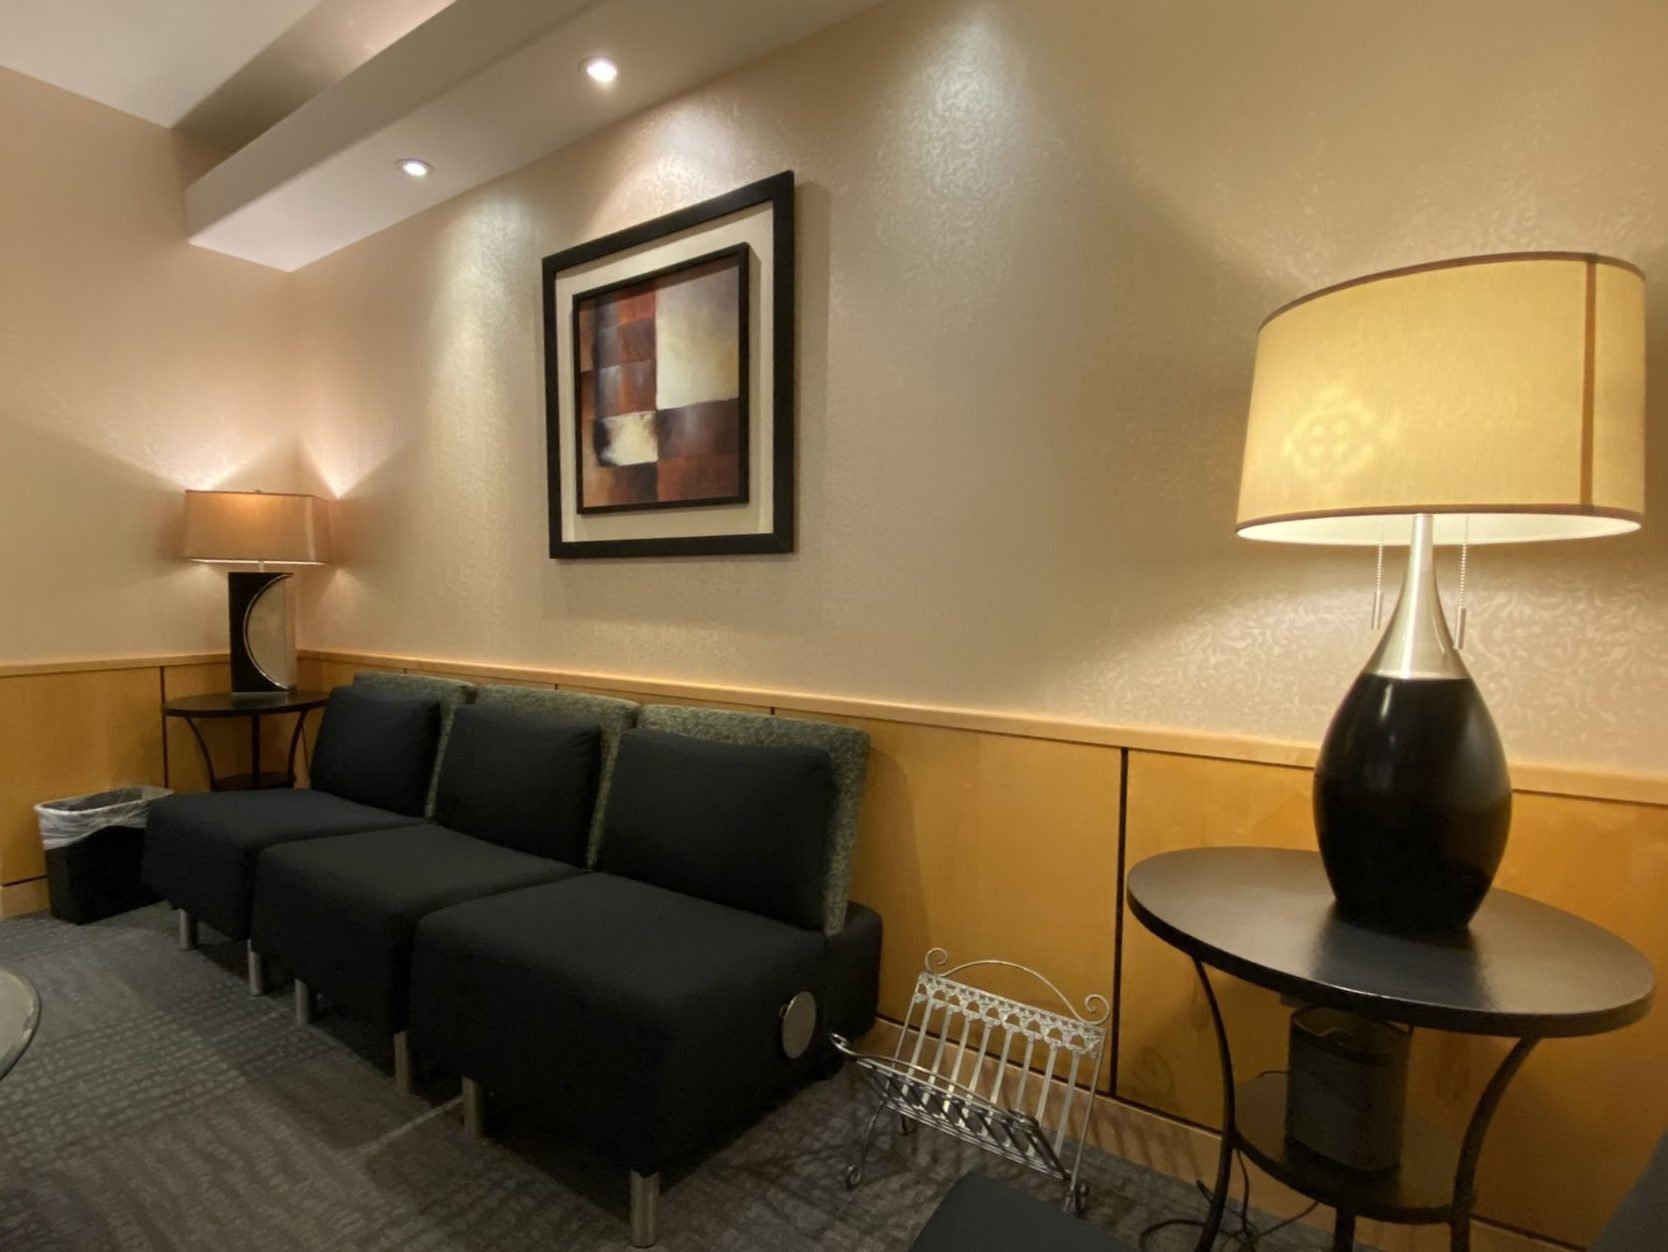 craig r dufresne md facs waiting area couch